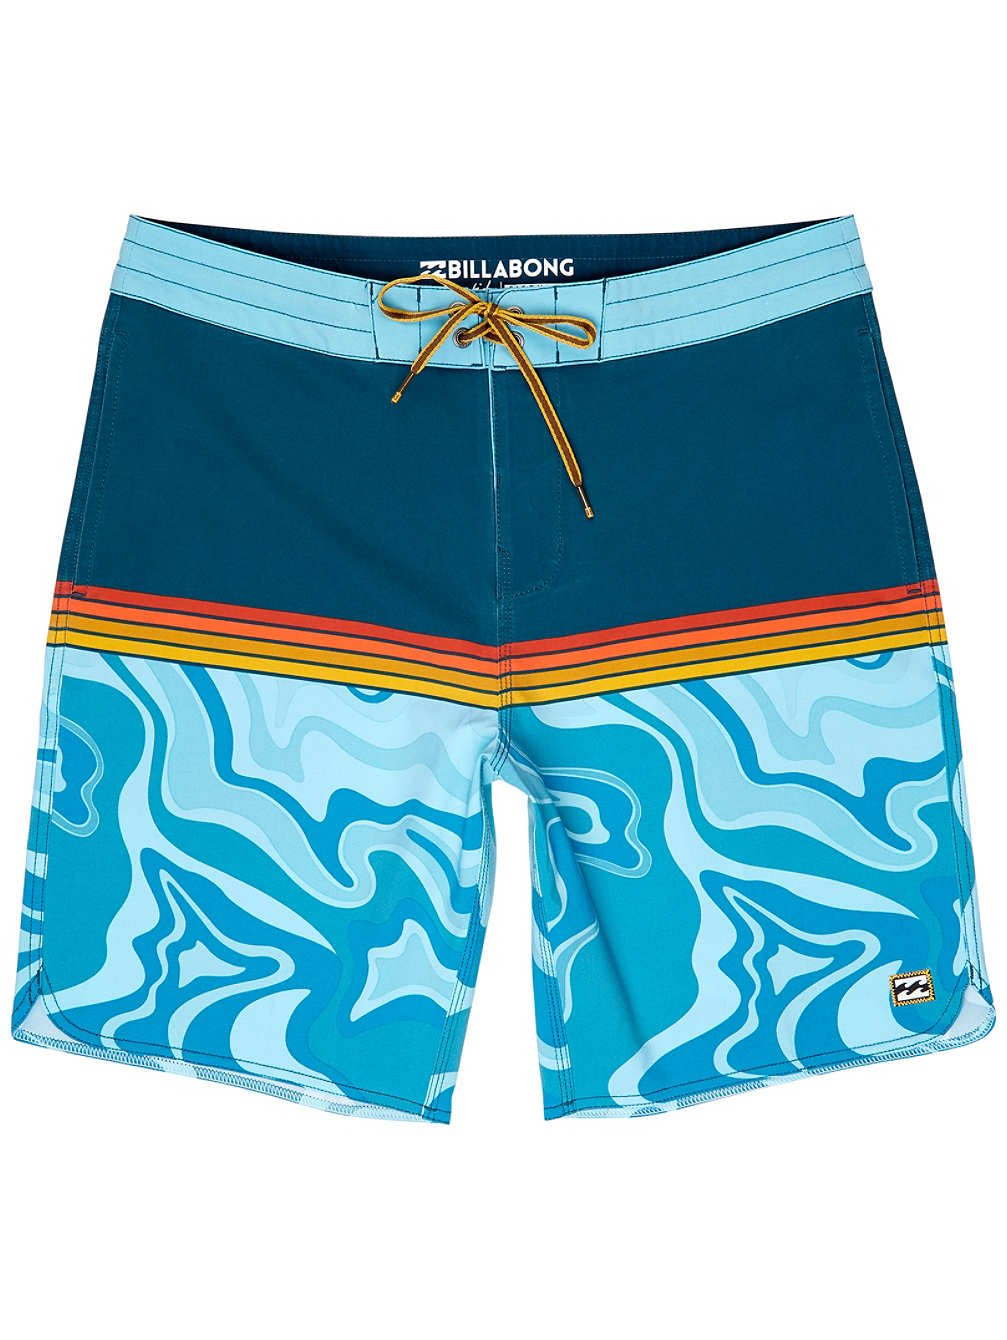 Billabong Herren Boardshorts Fifty50 Lt 18 Boardshorts